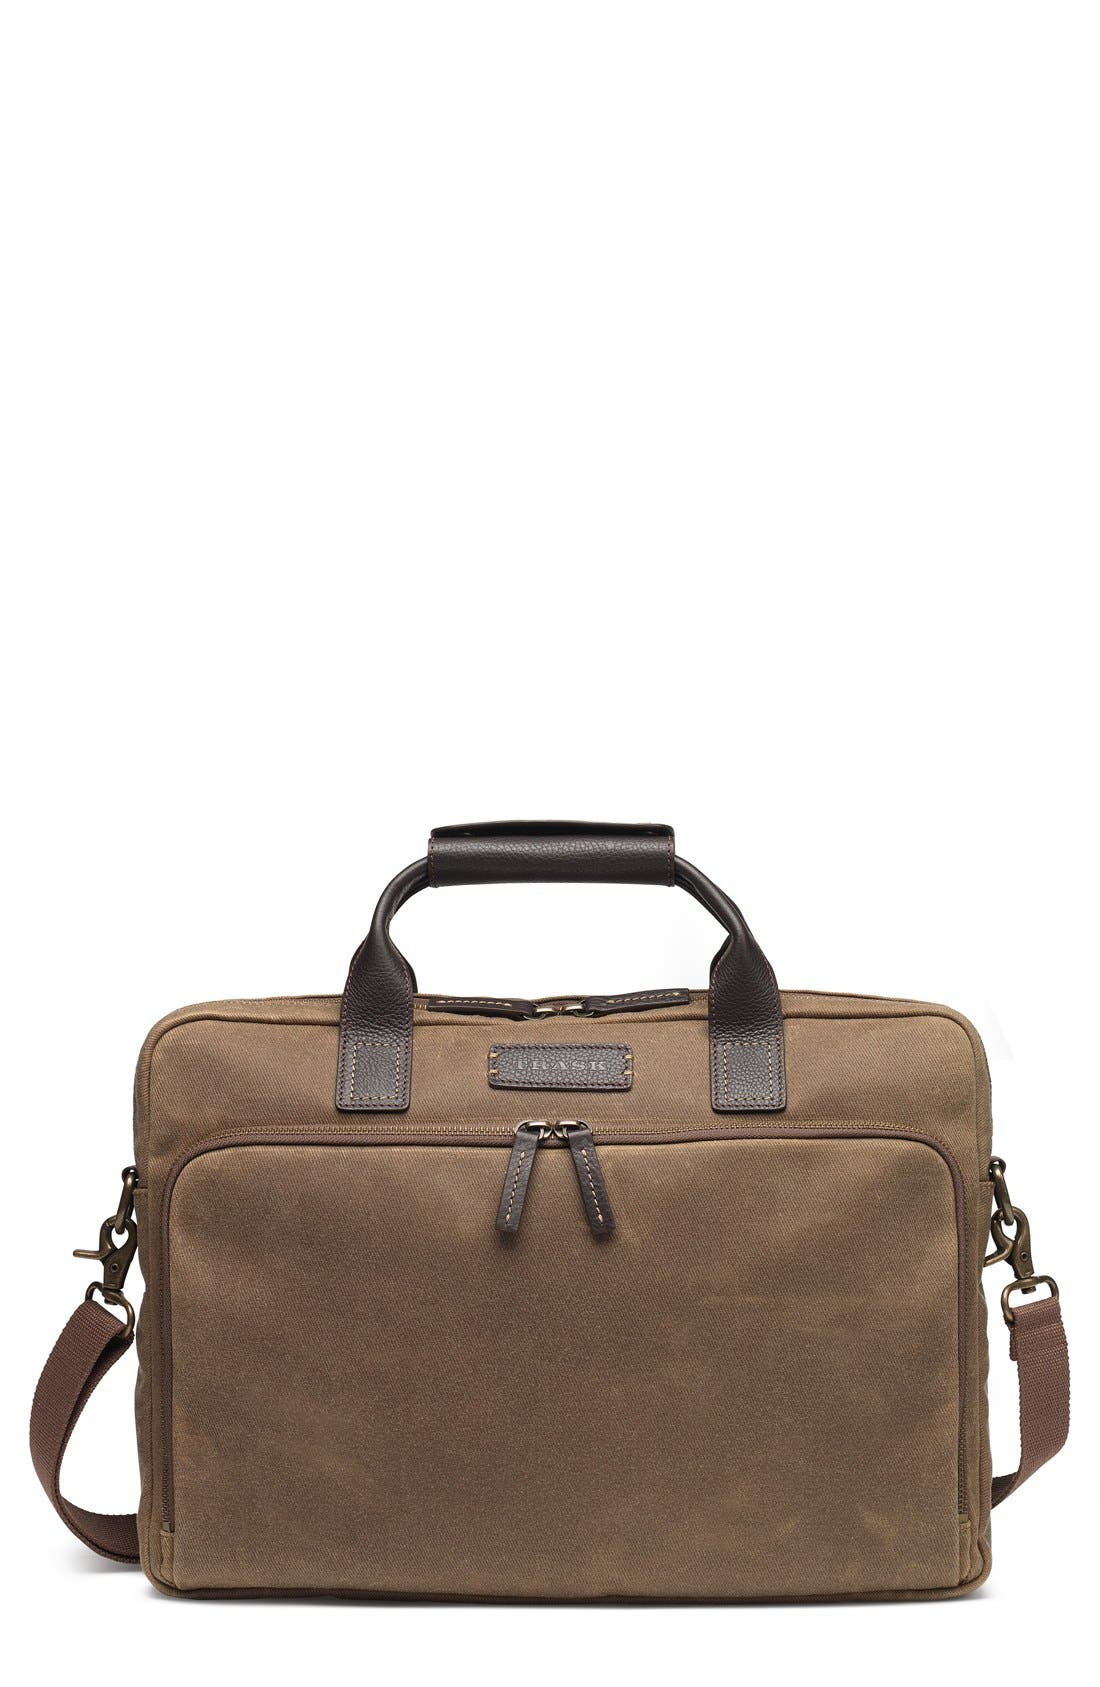 TRASK Bridger Trail Waxed Canvas Tote